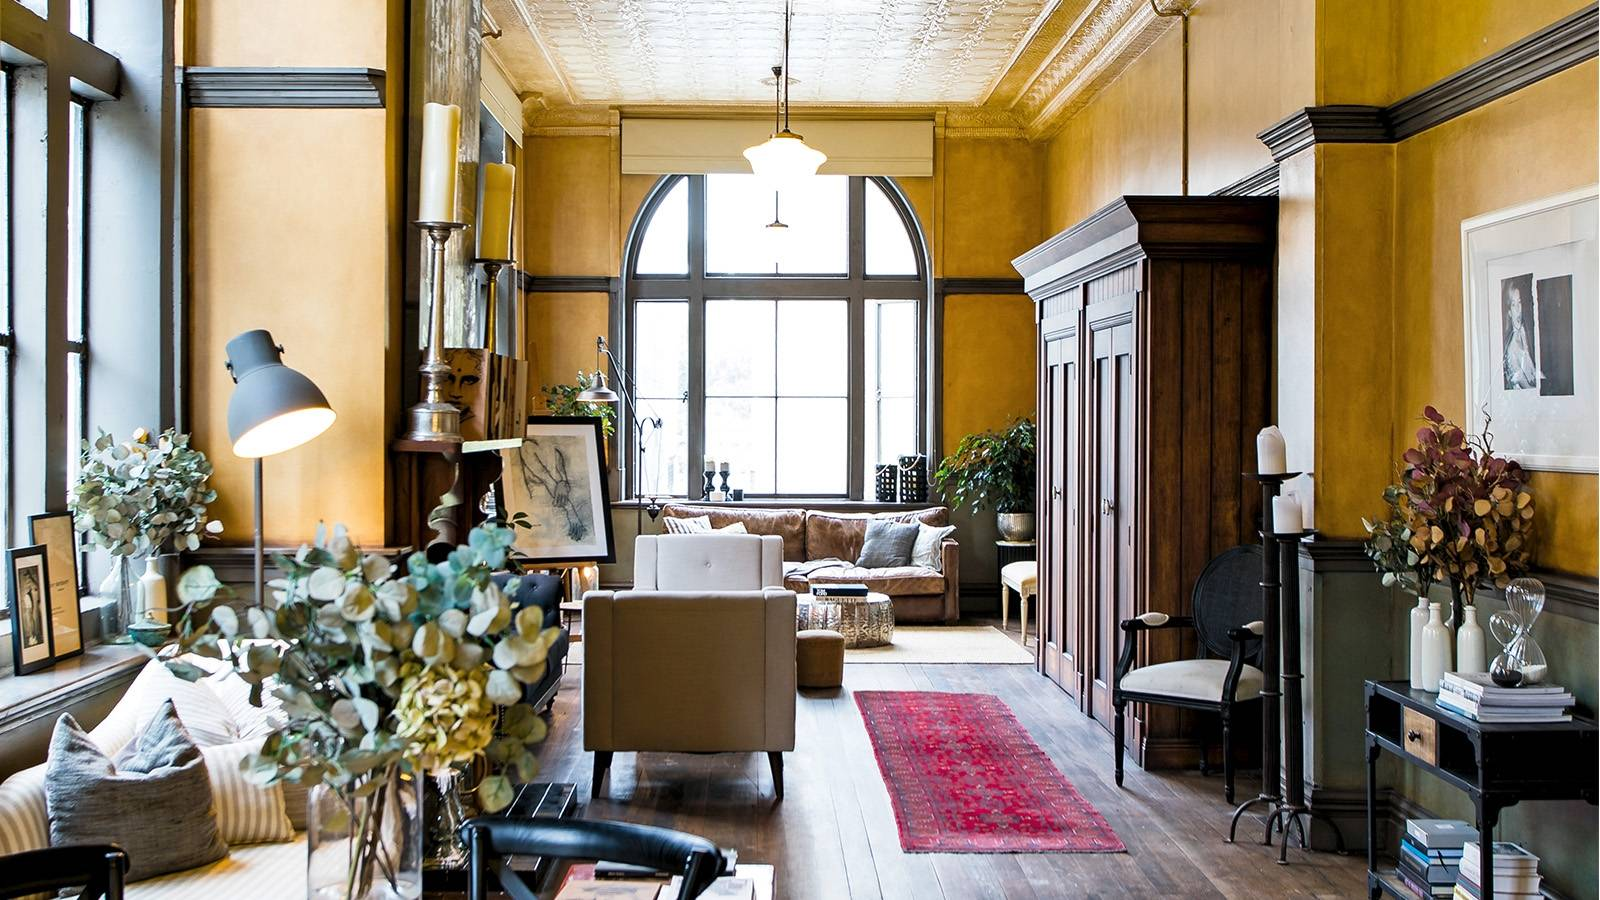 Rented heritage apartment rich with global treasures